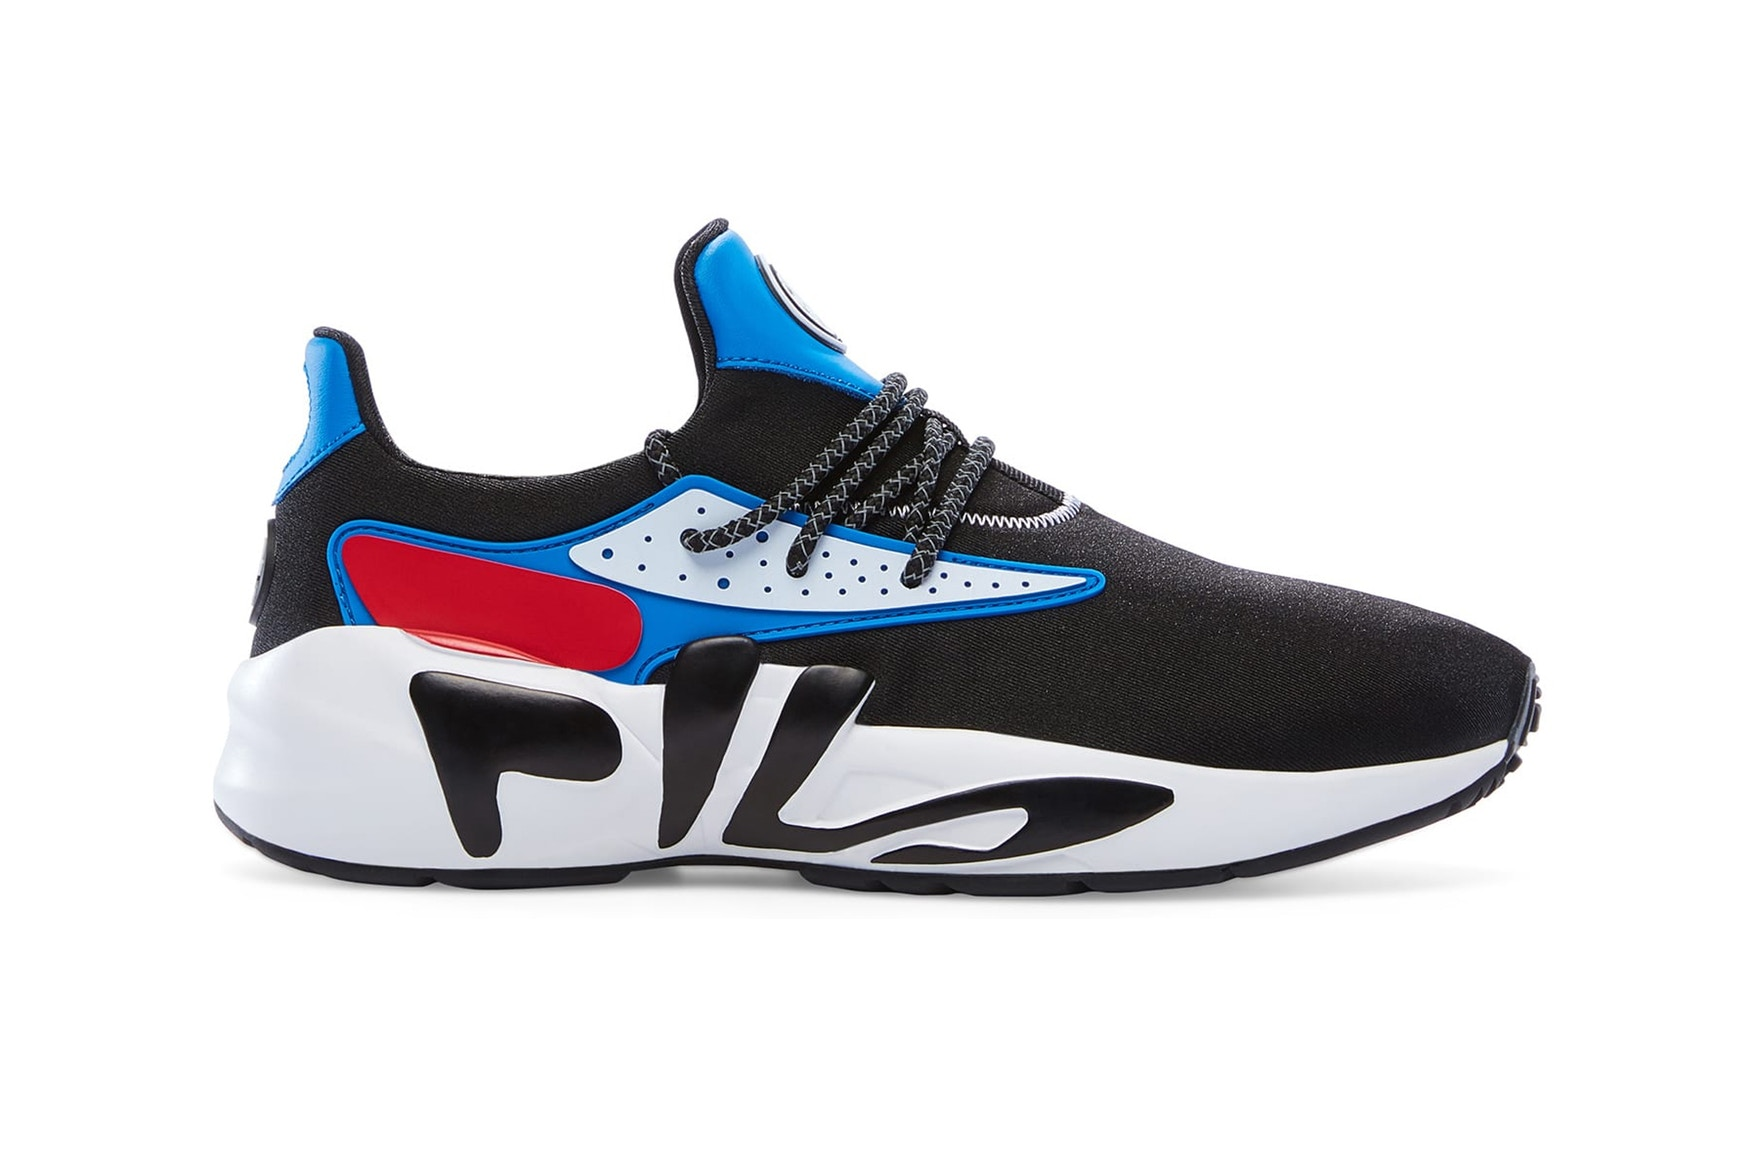 fila-revives-the-classic-mindblower-with-over-40-limited-edition-collaborations-46